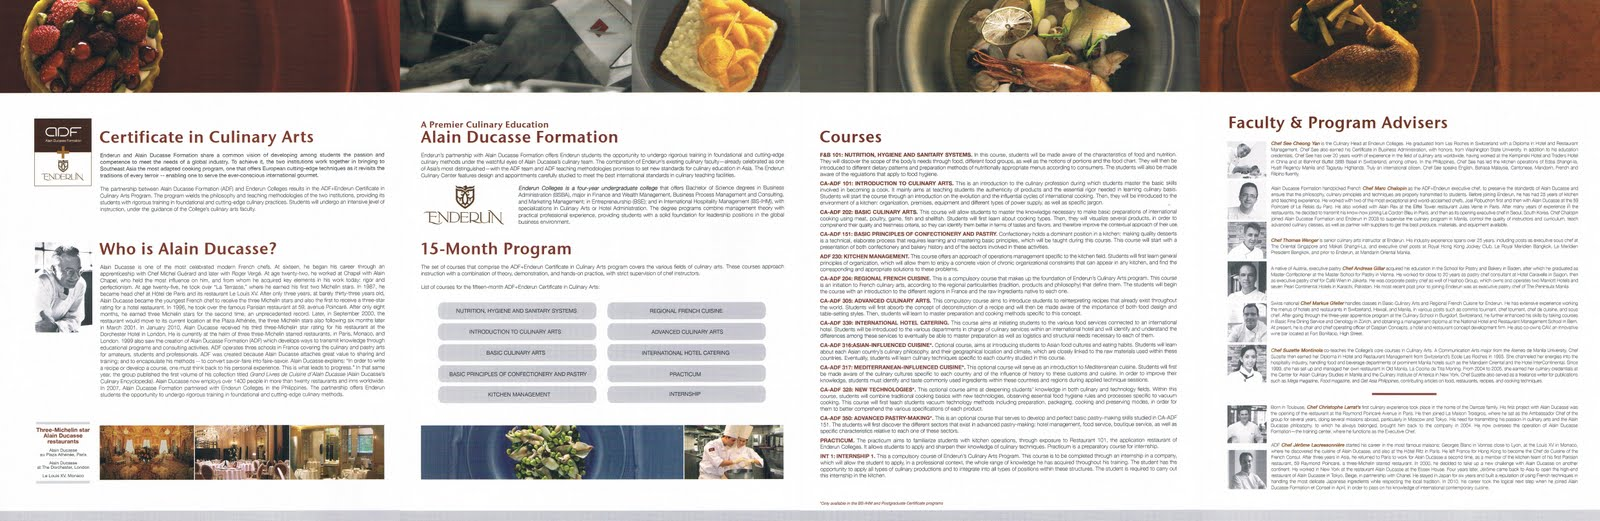 Enderun discover cuisine adfenderuns intensive 15 month certificate in culinary arts program brochure xflitez Image collections